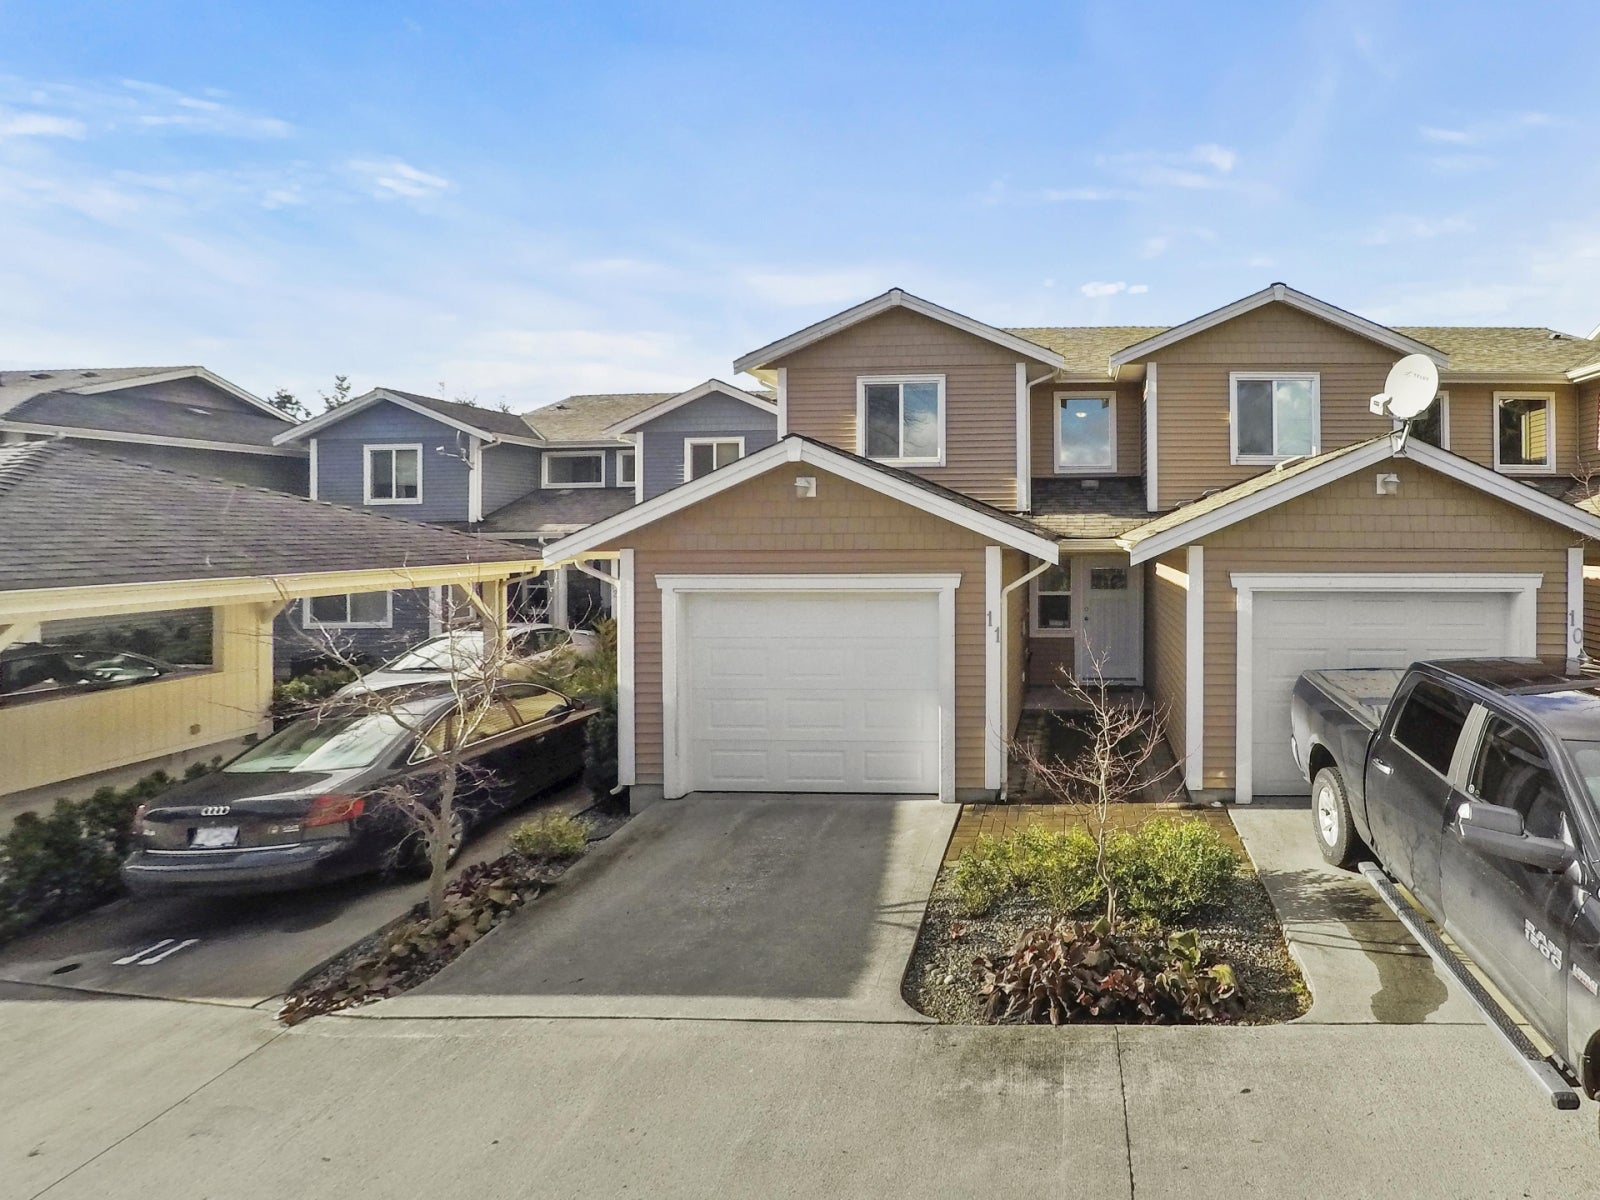 11 624 SHAW ROAD - Gibsons & Area Townhouse for sale, 3 Bedrooms (R2234910) #2